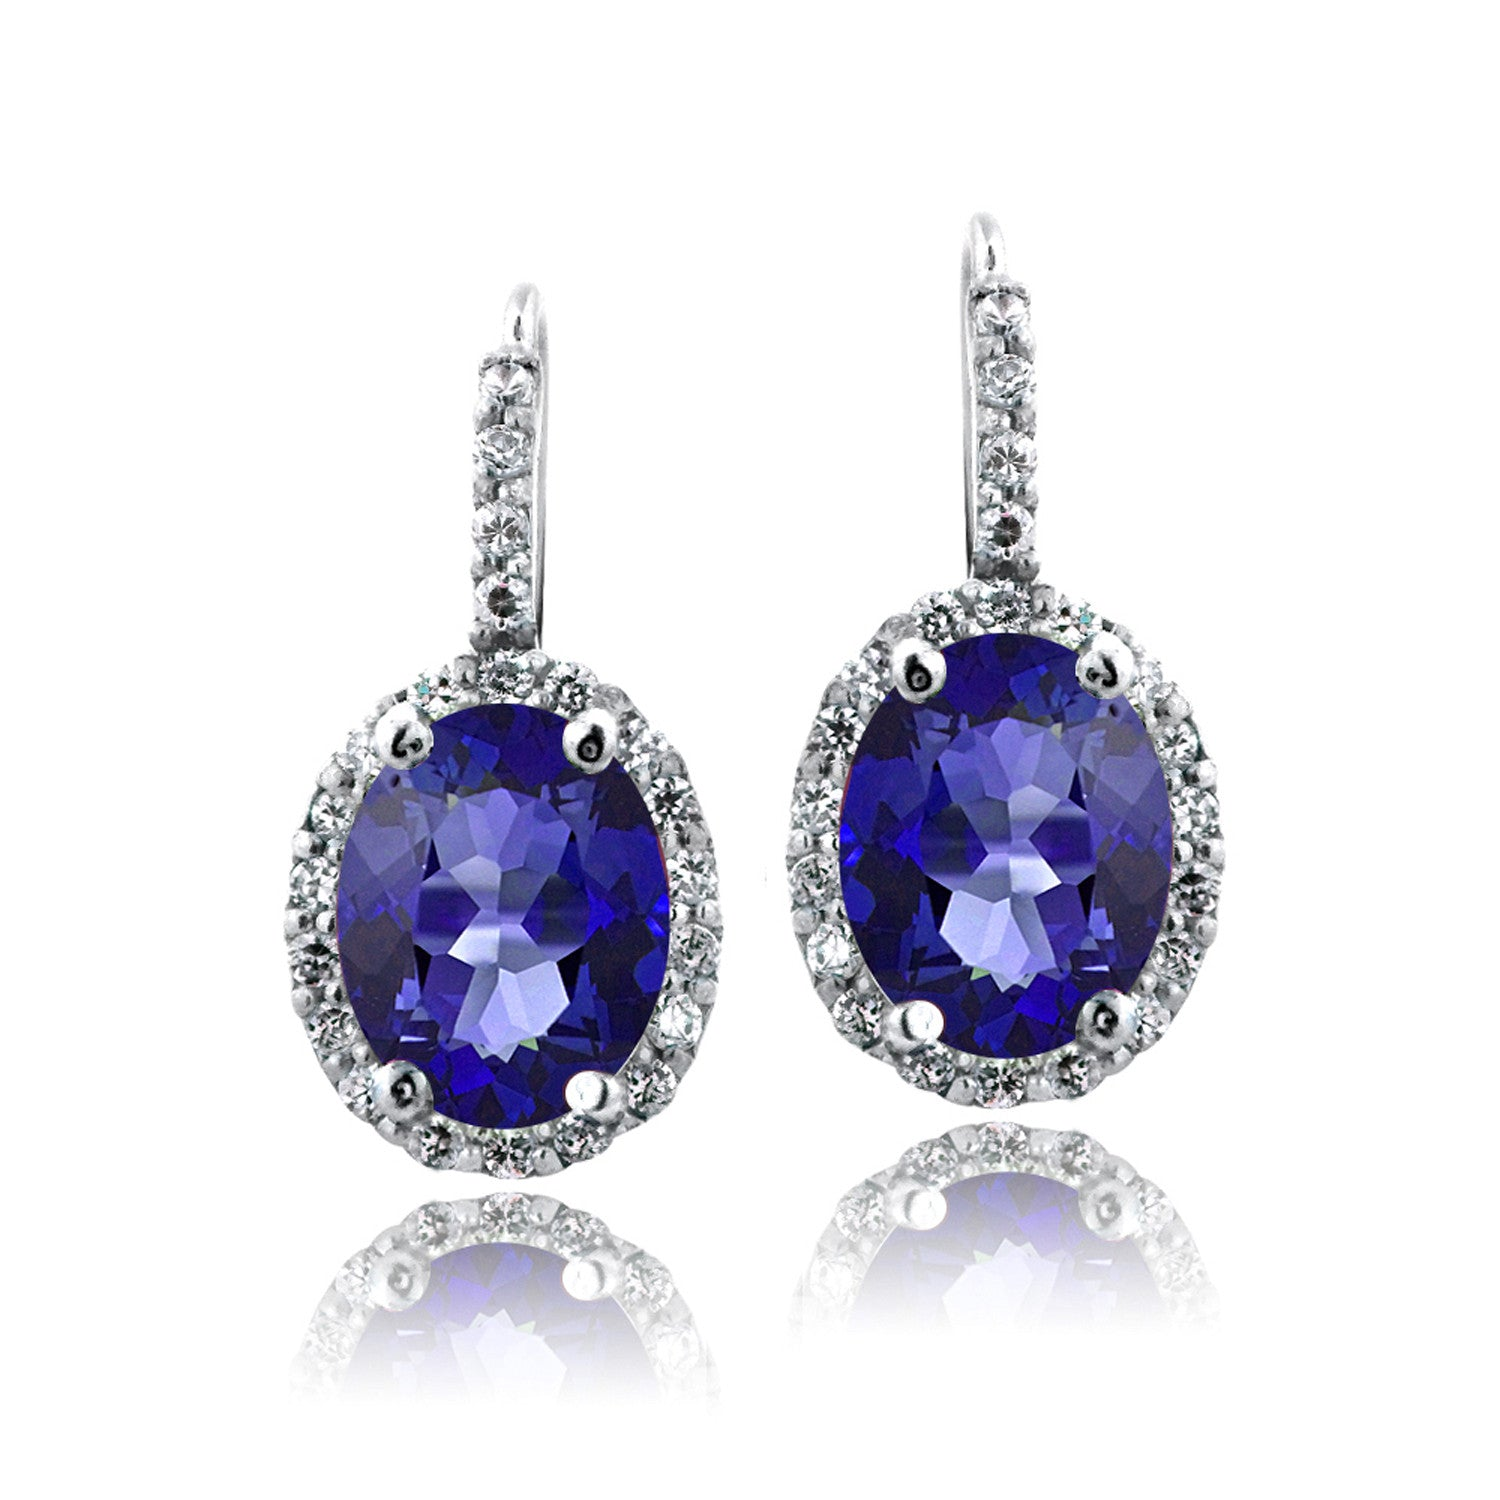 Oval Cut Gemstone Accent Sterling Silver Leverback Birthstone Earrings - September Created Sapphire